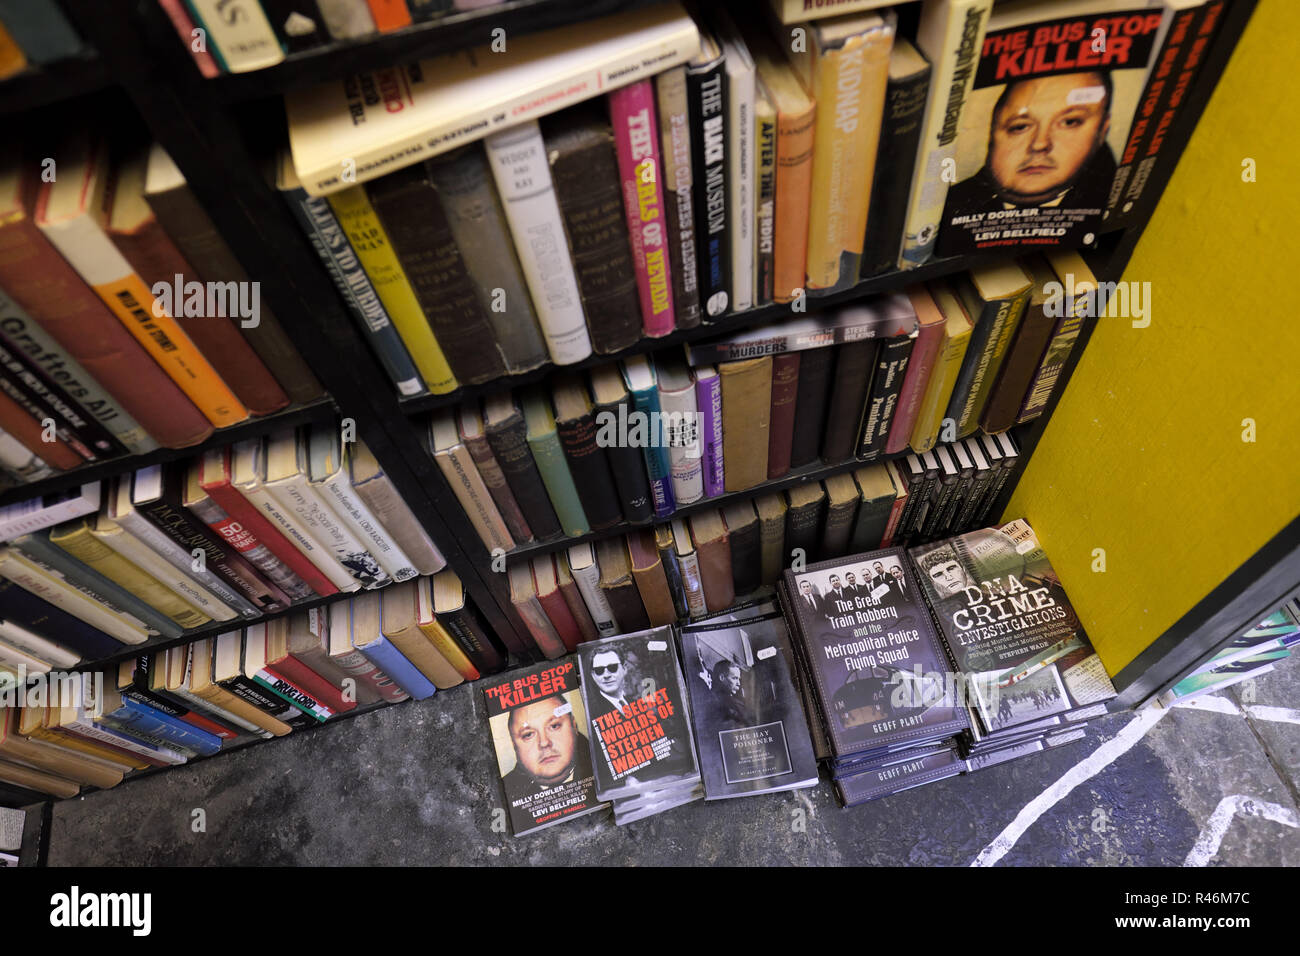 Hay on Wye, Wales, UK - Inside the Addyman bookshop which specialises in crime and thriller murder books Stock Photo